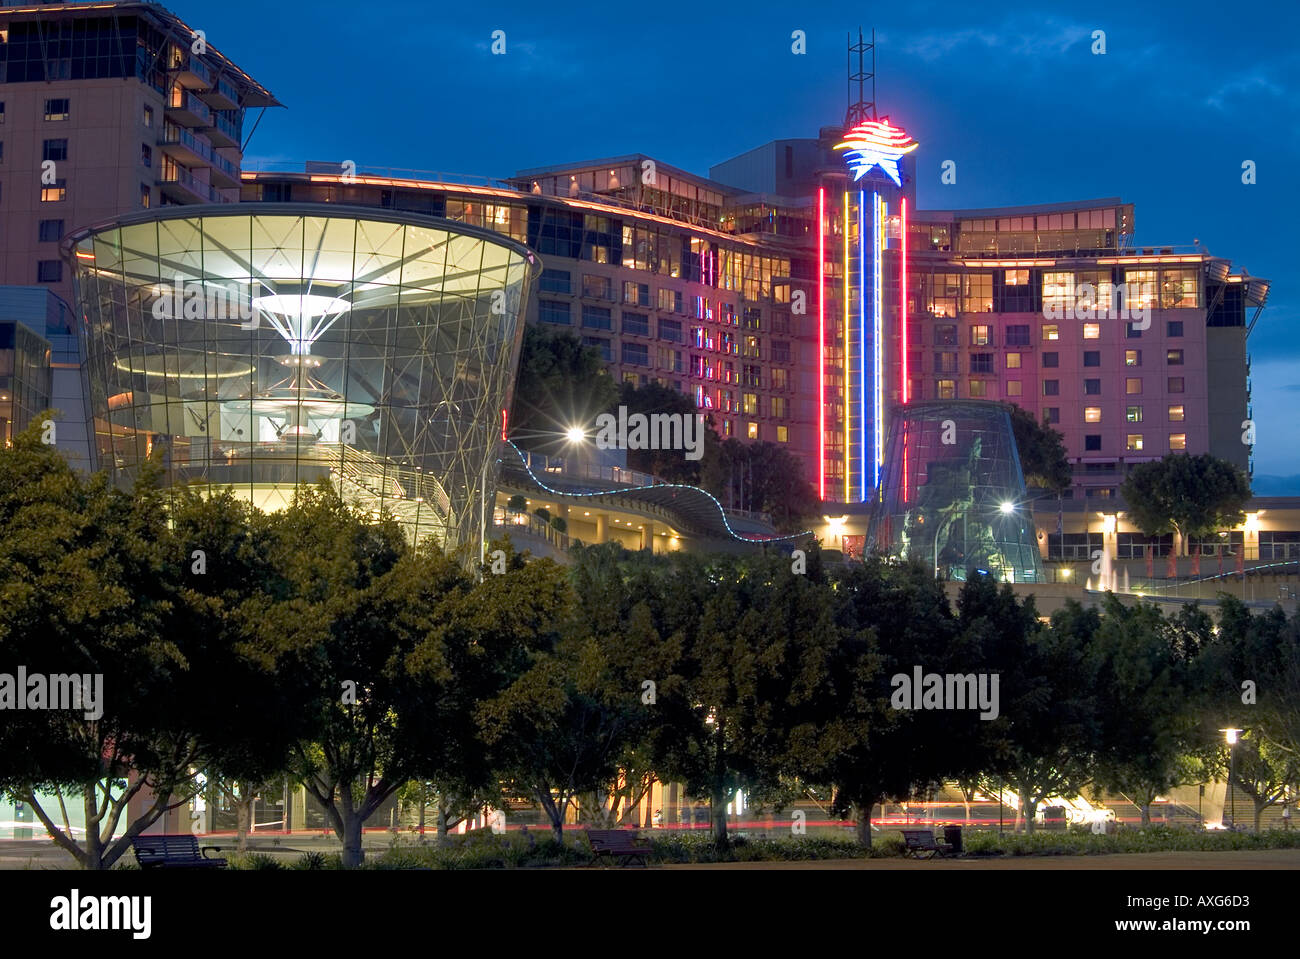 Star city casino sydney australia casino hotel tunica ms